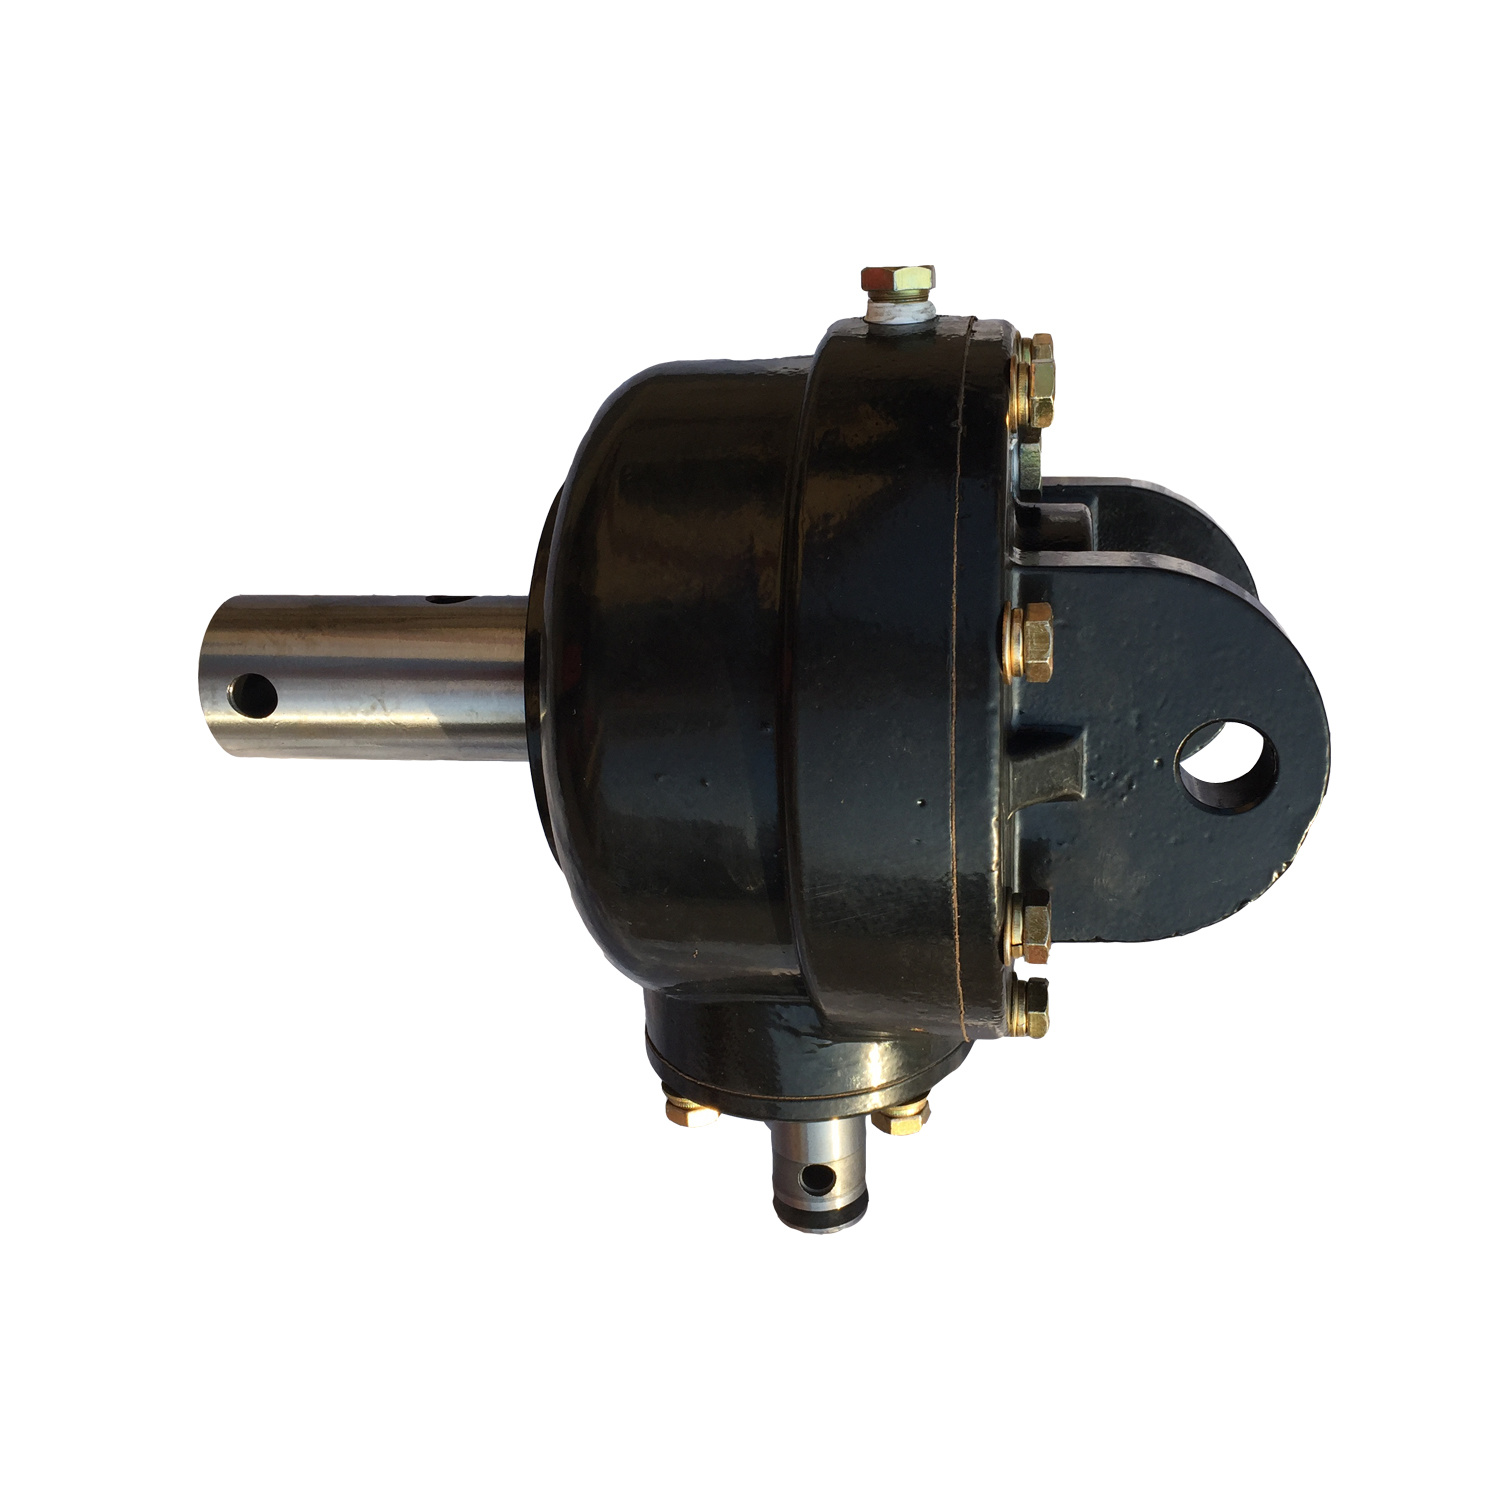 Customization Gear Casing Gear Box for Earth Auger Pit Borer